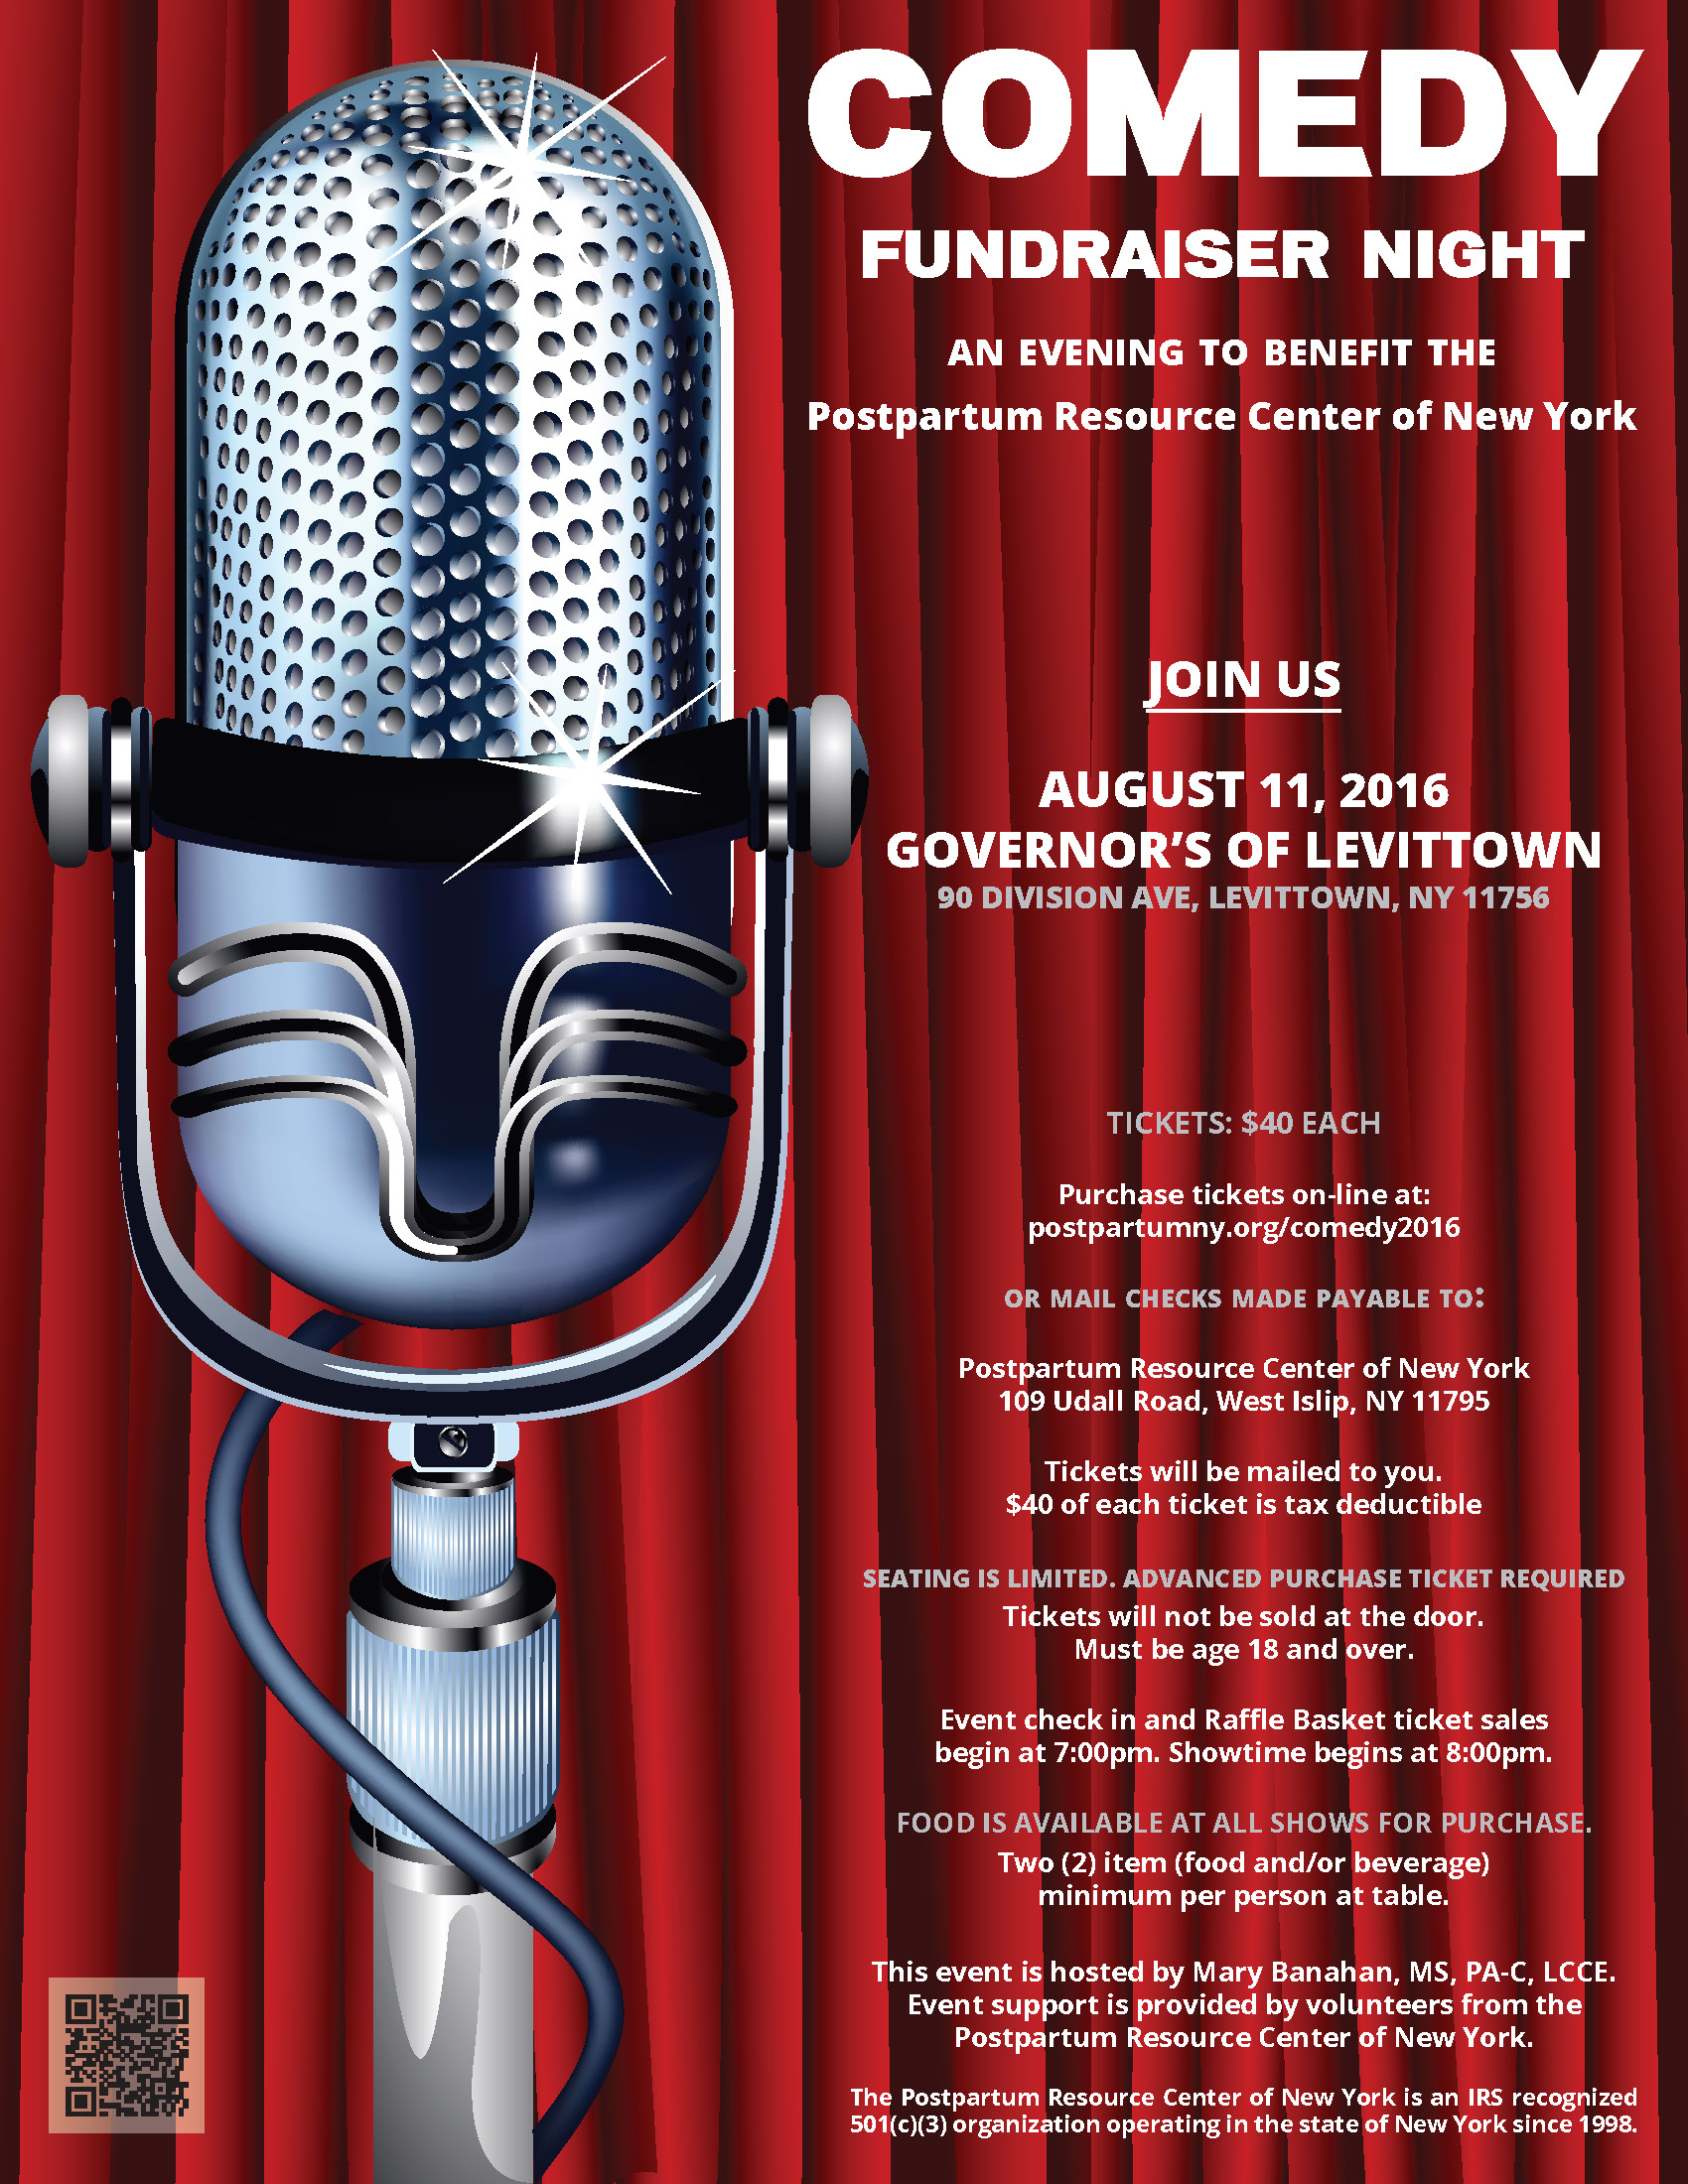 Comedy Night Fundraiser for the Postpartum Resource Center of New York - August 11, 2016